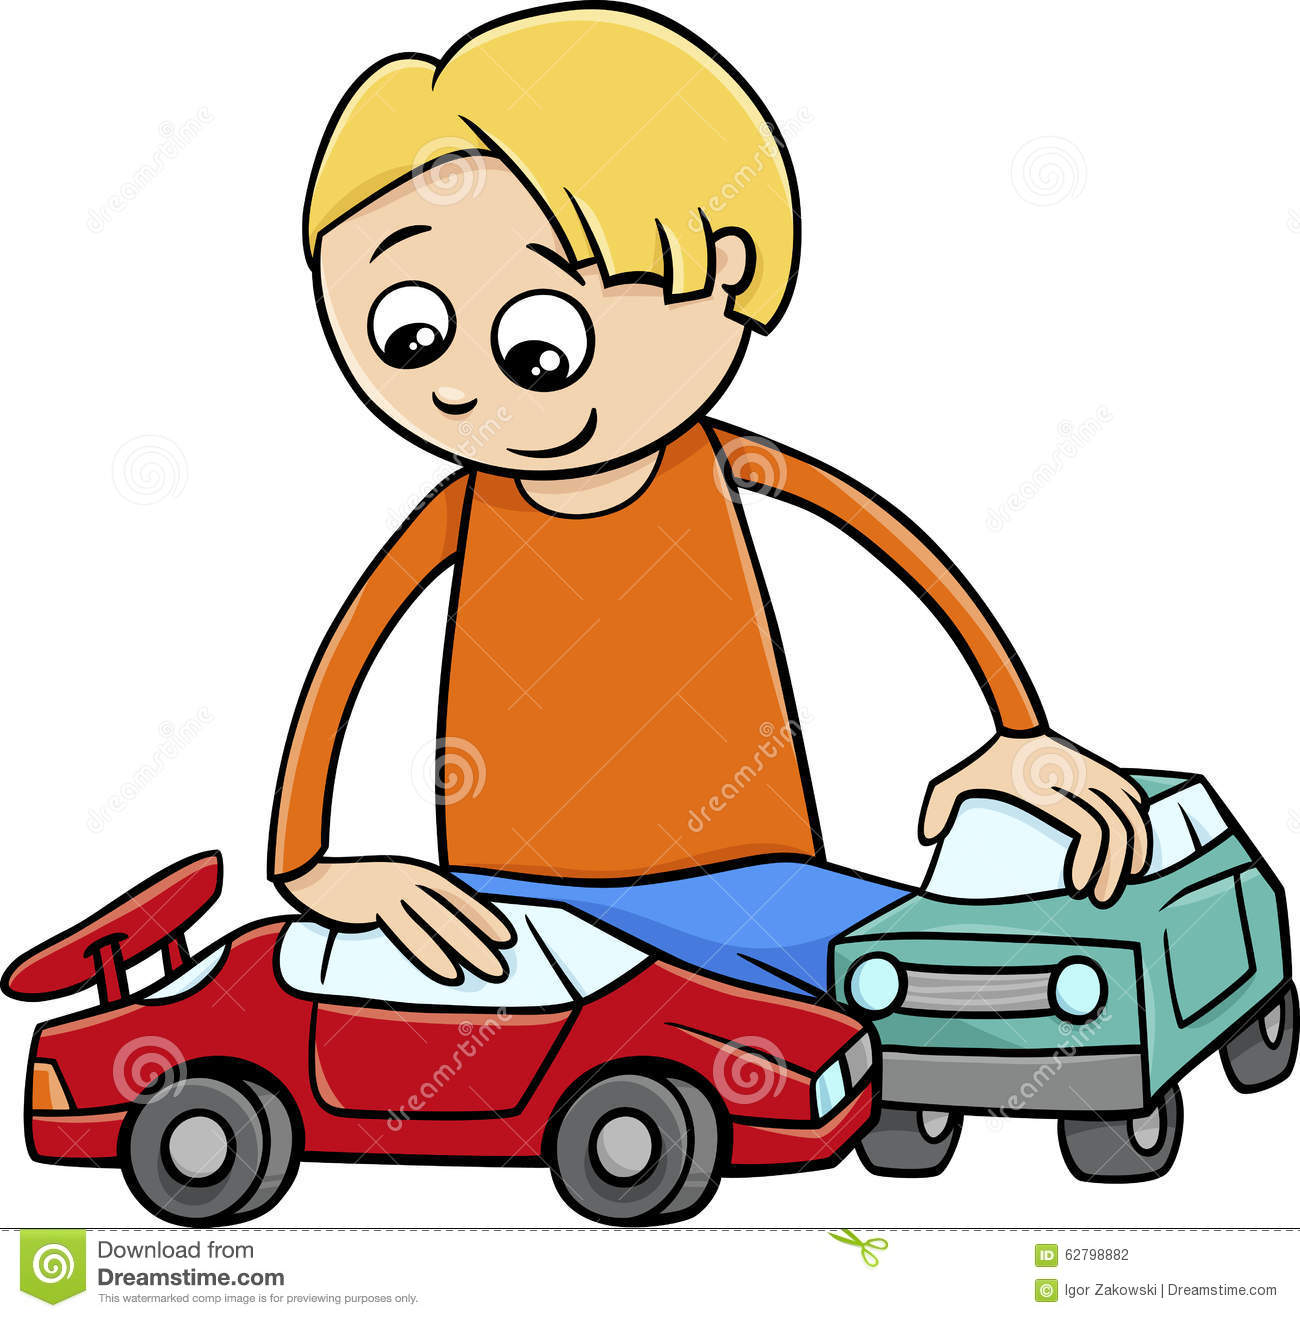 Boy With Toy Cars Cartoon Stock Vector - Image: 62798882